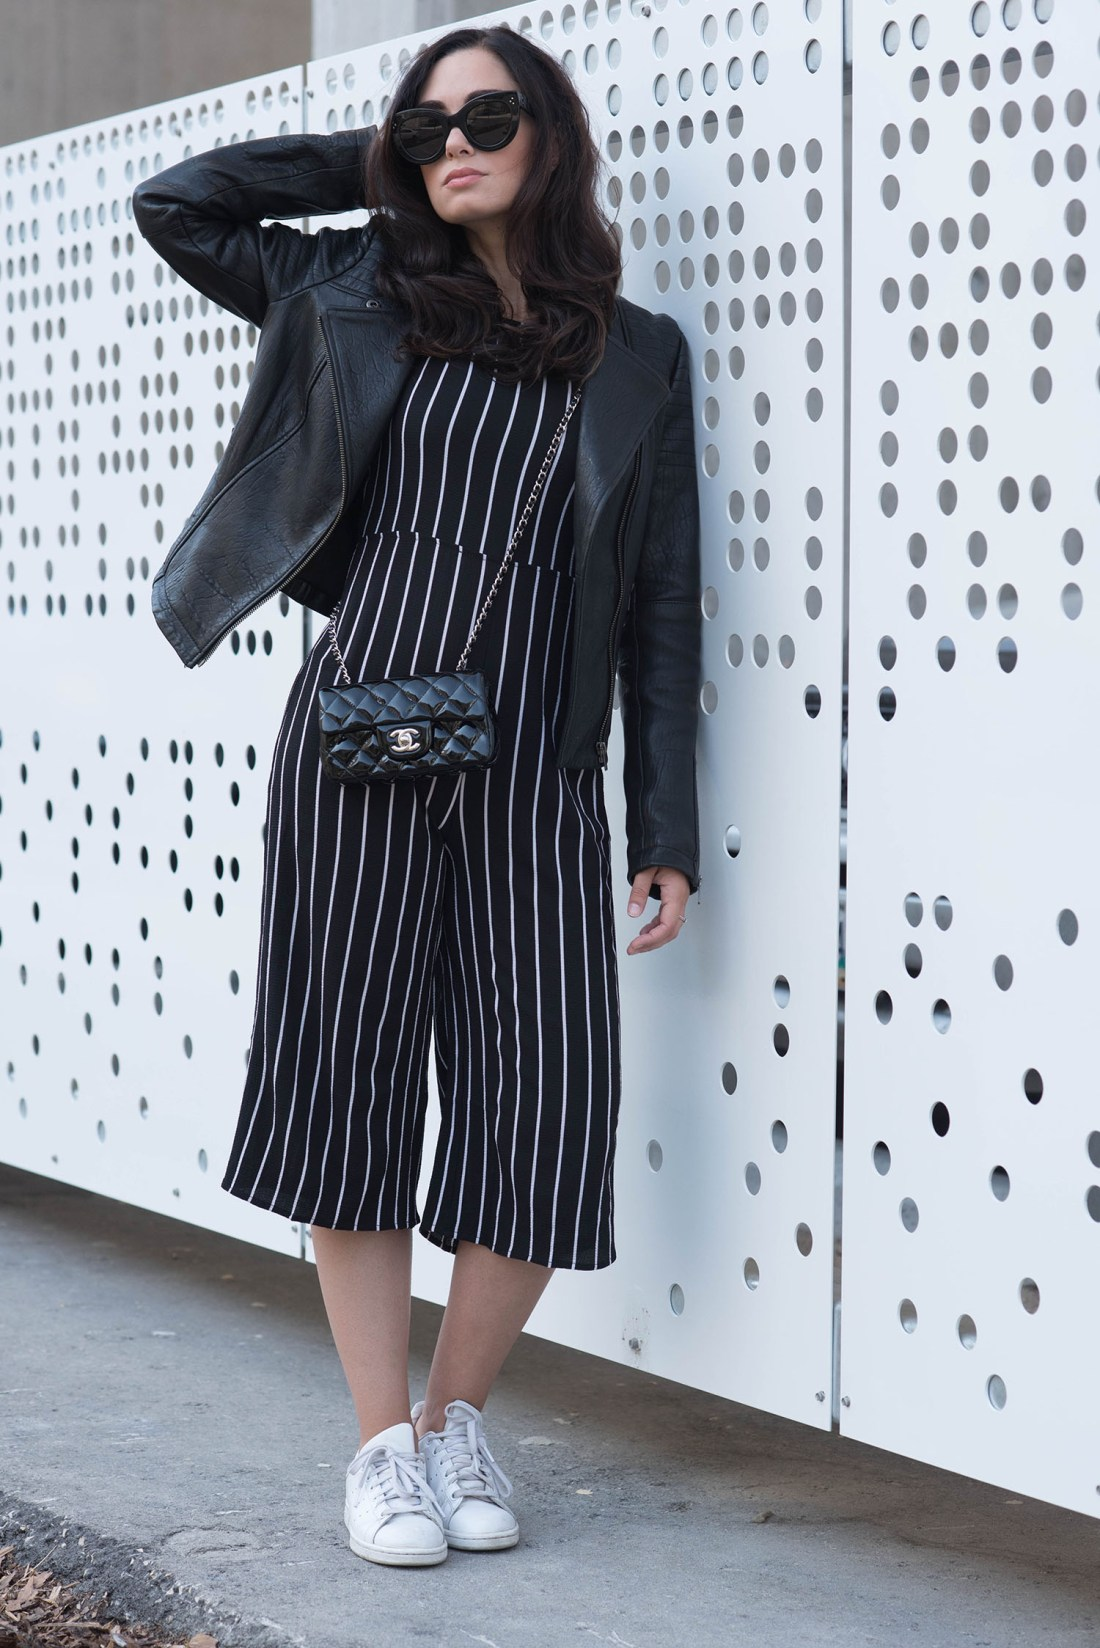 Fashion blogger Cee Fardoe of Coco & Vera wears a striped Missy Empire jumpsuit with Adidas Stan Smith sneakers and a Chanel extra mini handbag